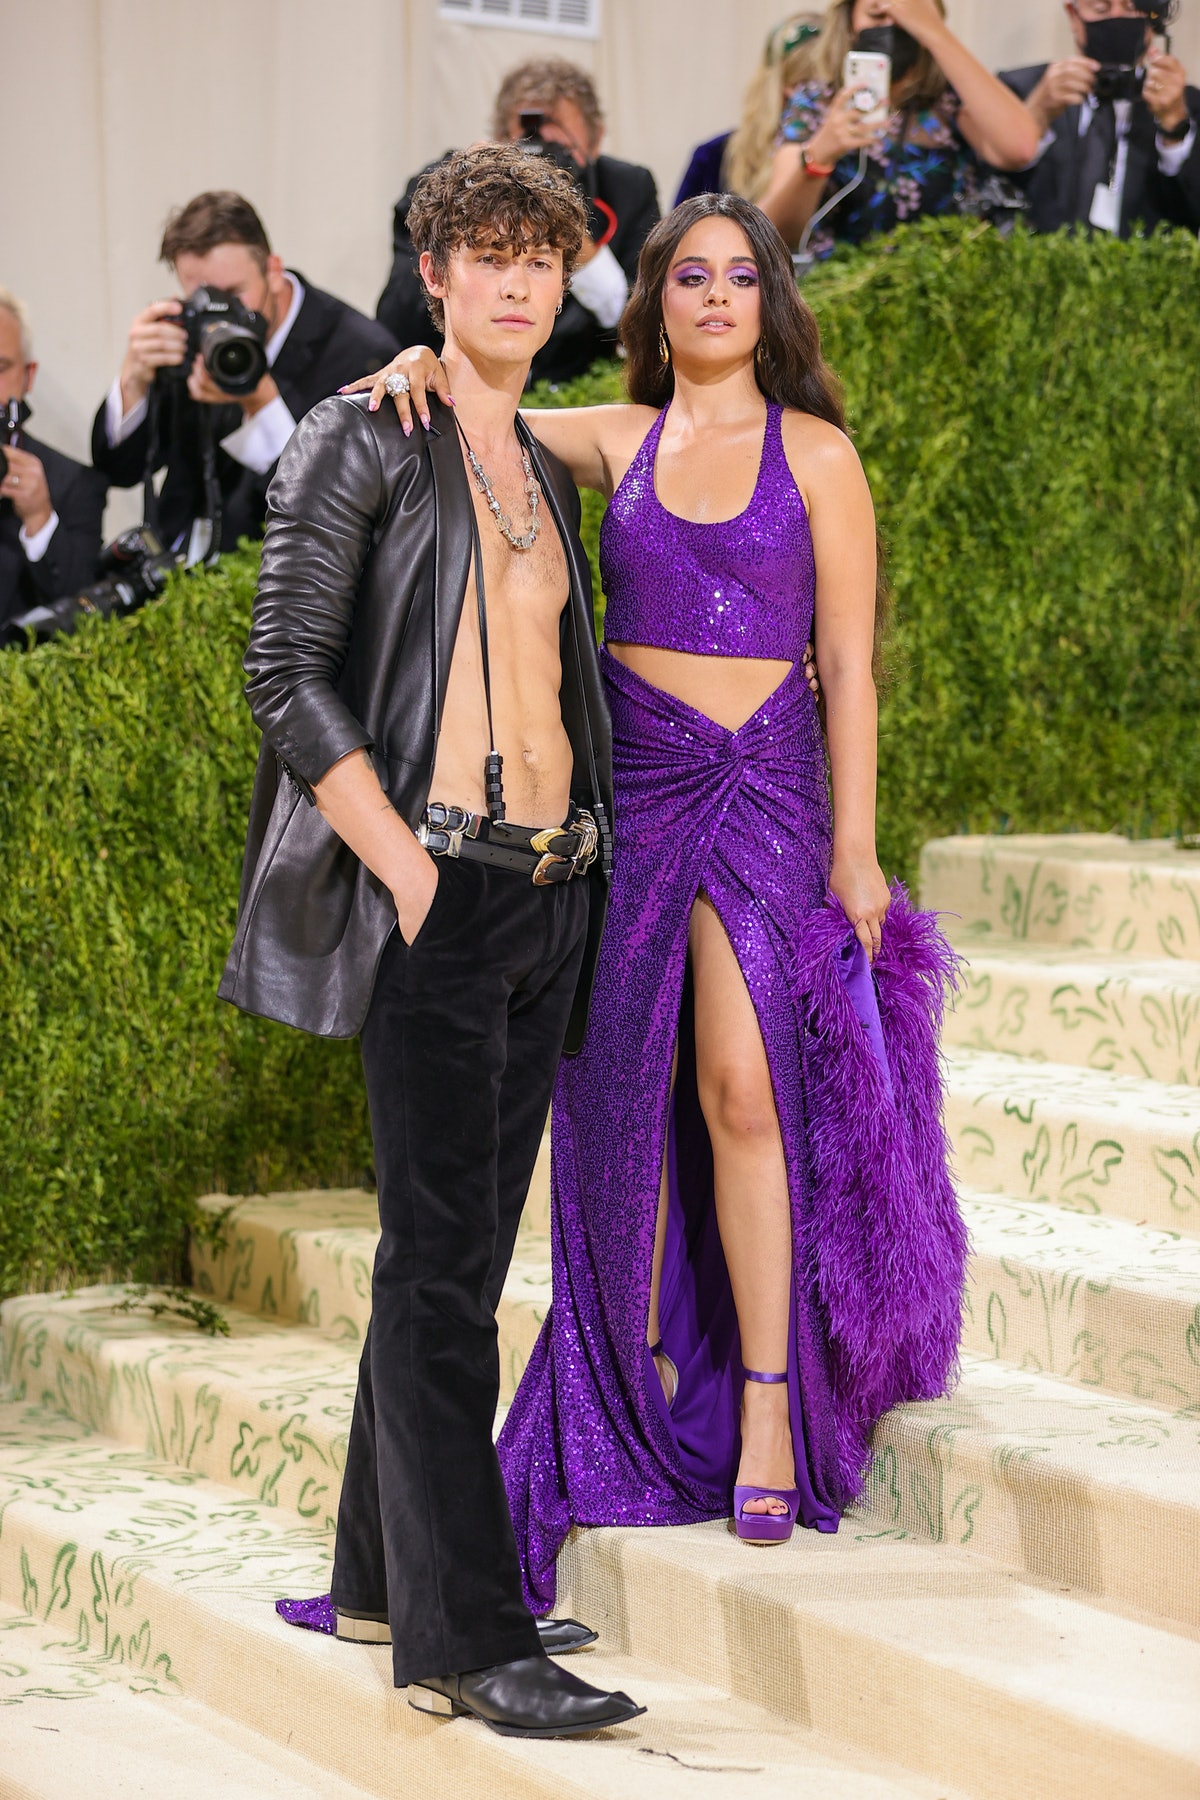 Shawn Mendes and Camila Cabello attend The 2021 Met Gala